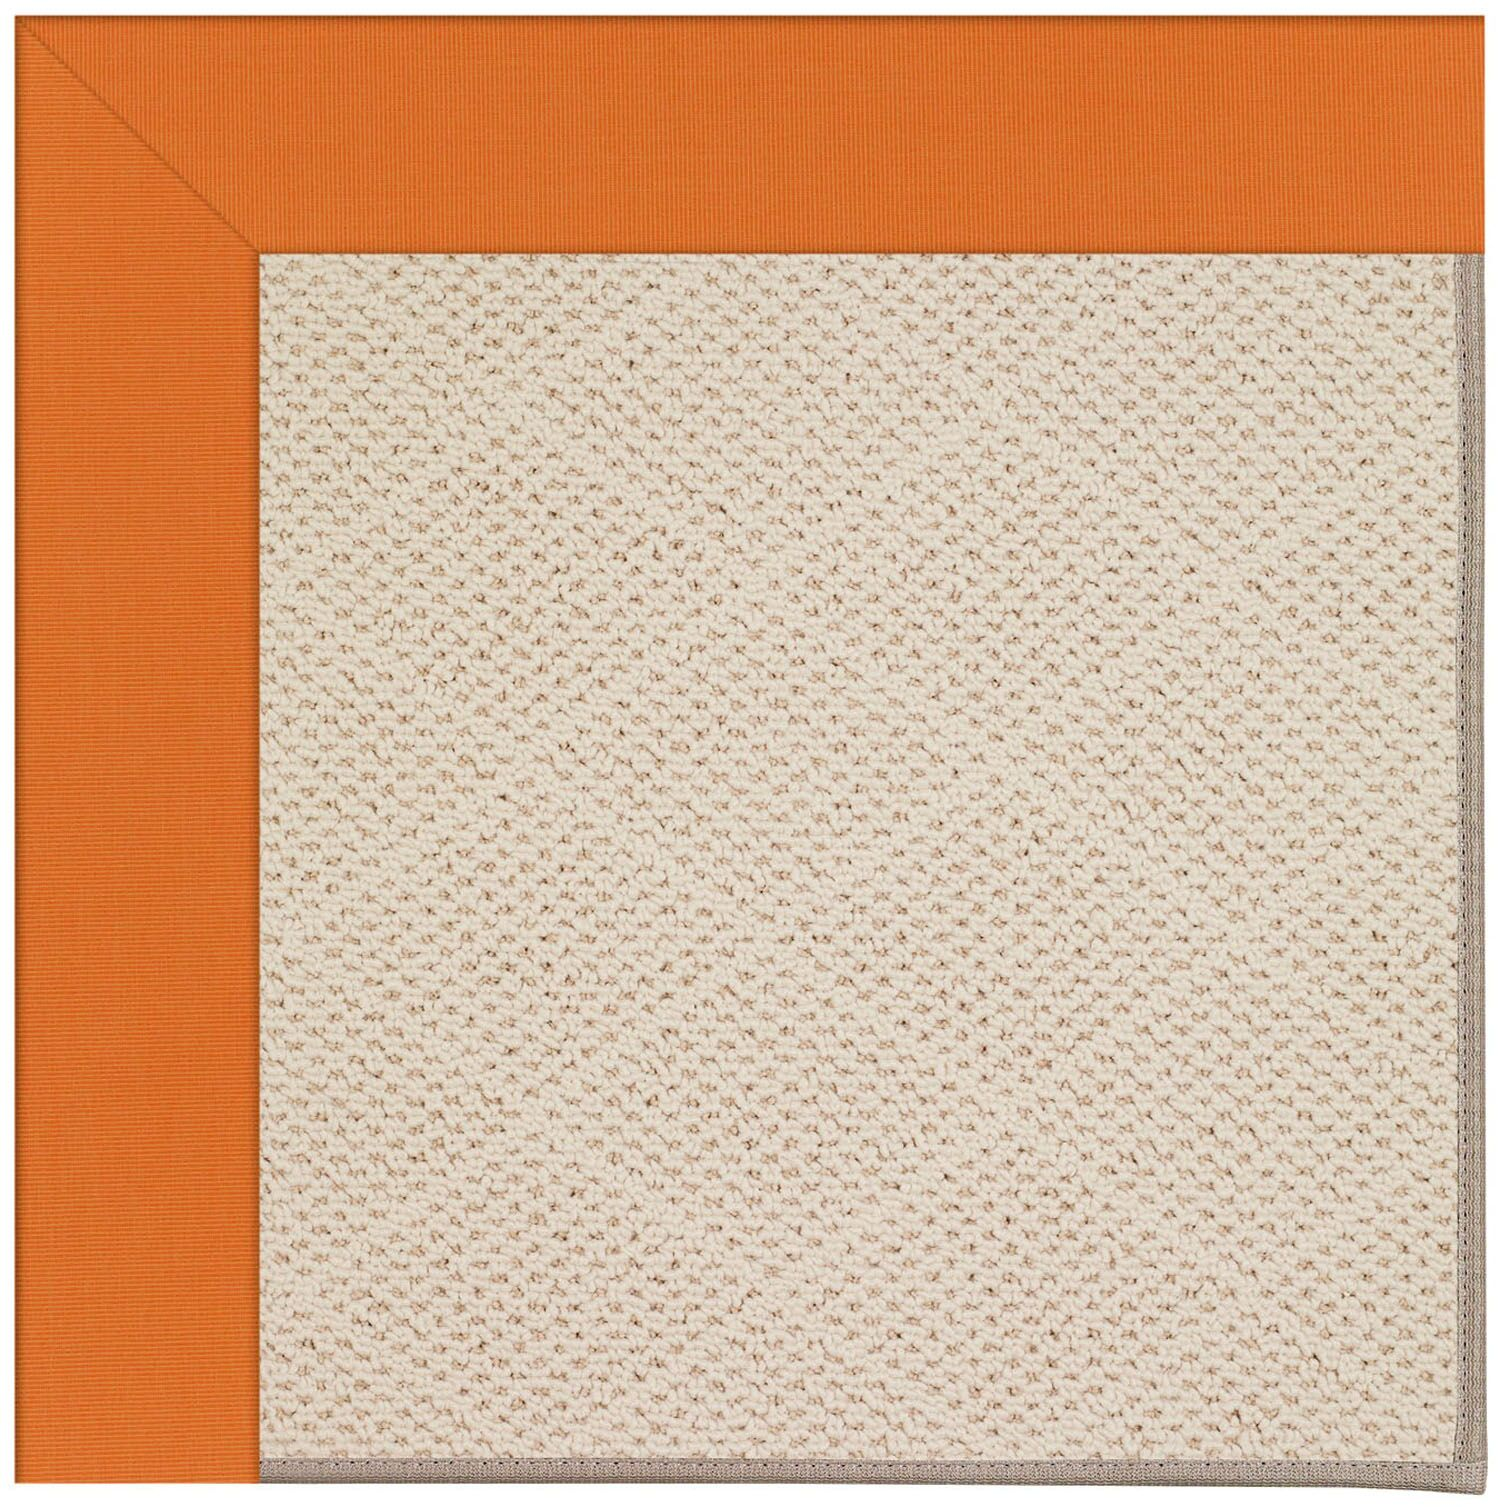 Lisle Beige Indoor/Outdoor Area Rug Rug Size: Rectangle 10' x 14'